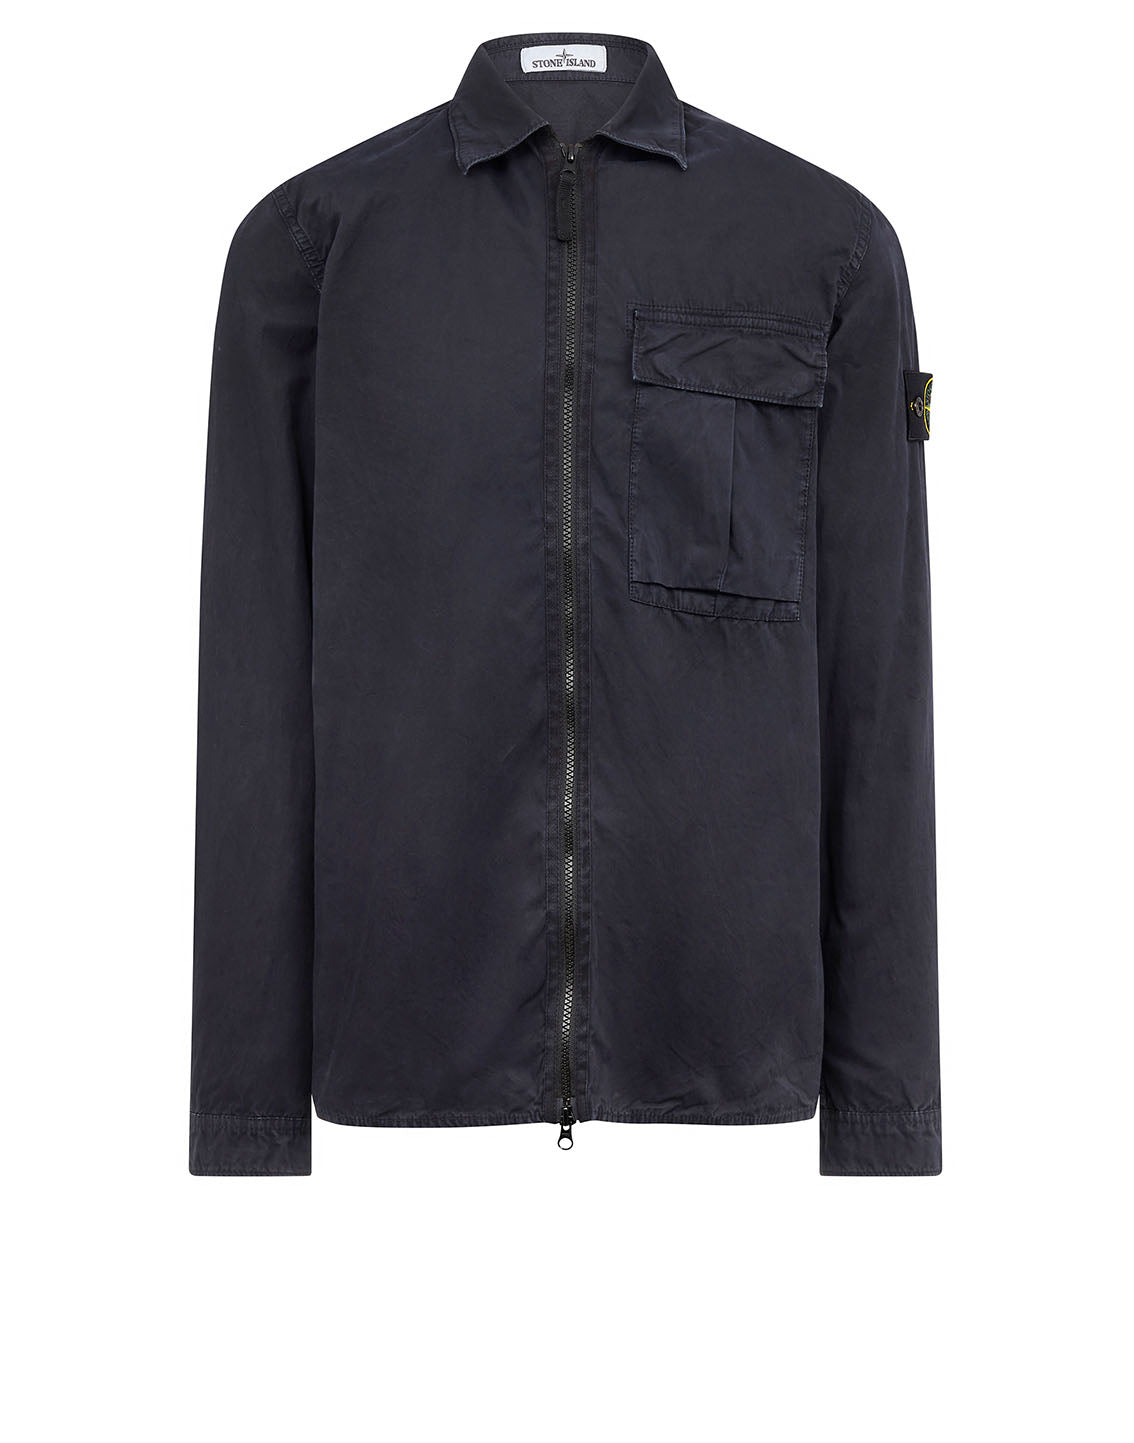 115WN 'OLD' DYE TREATMENT Overshirt in Navy Blue